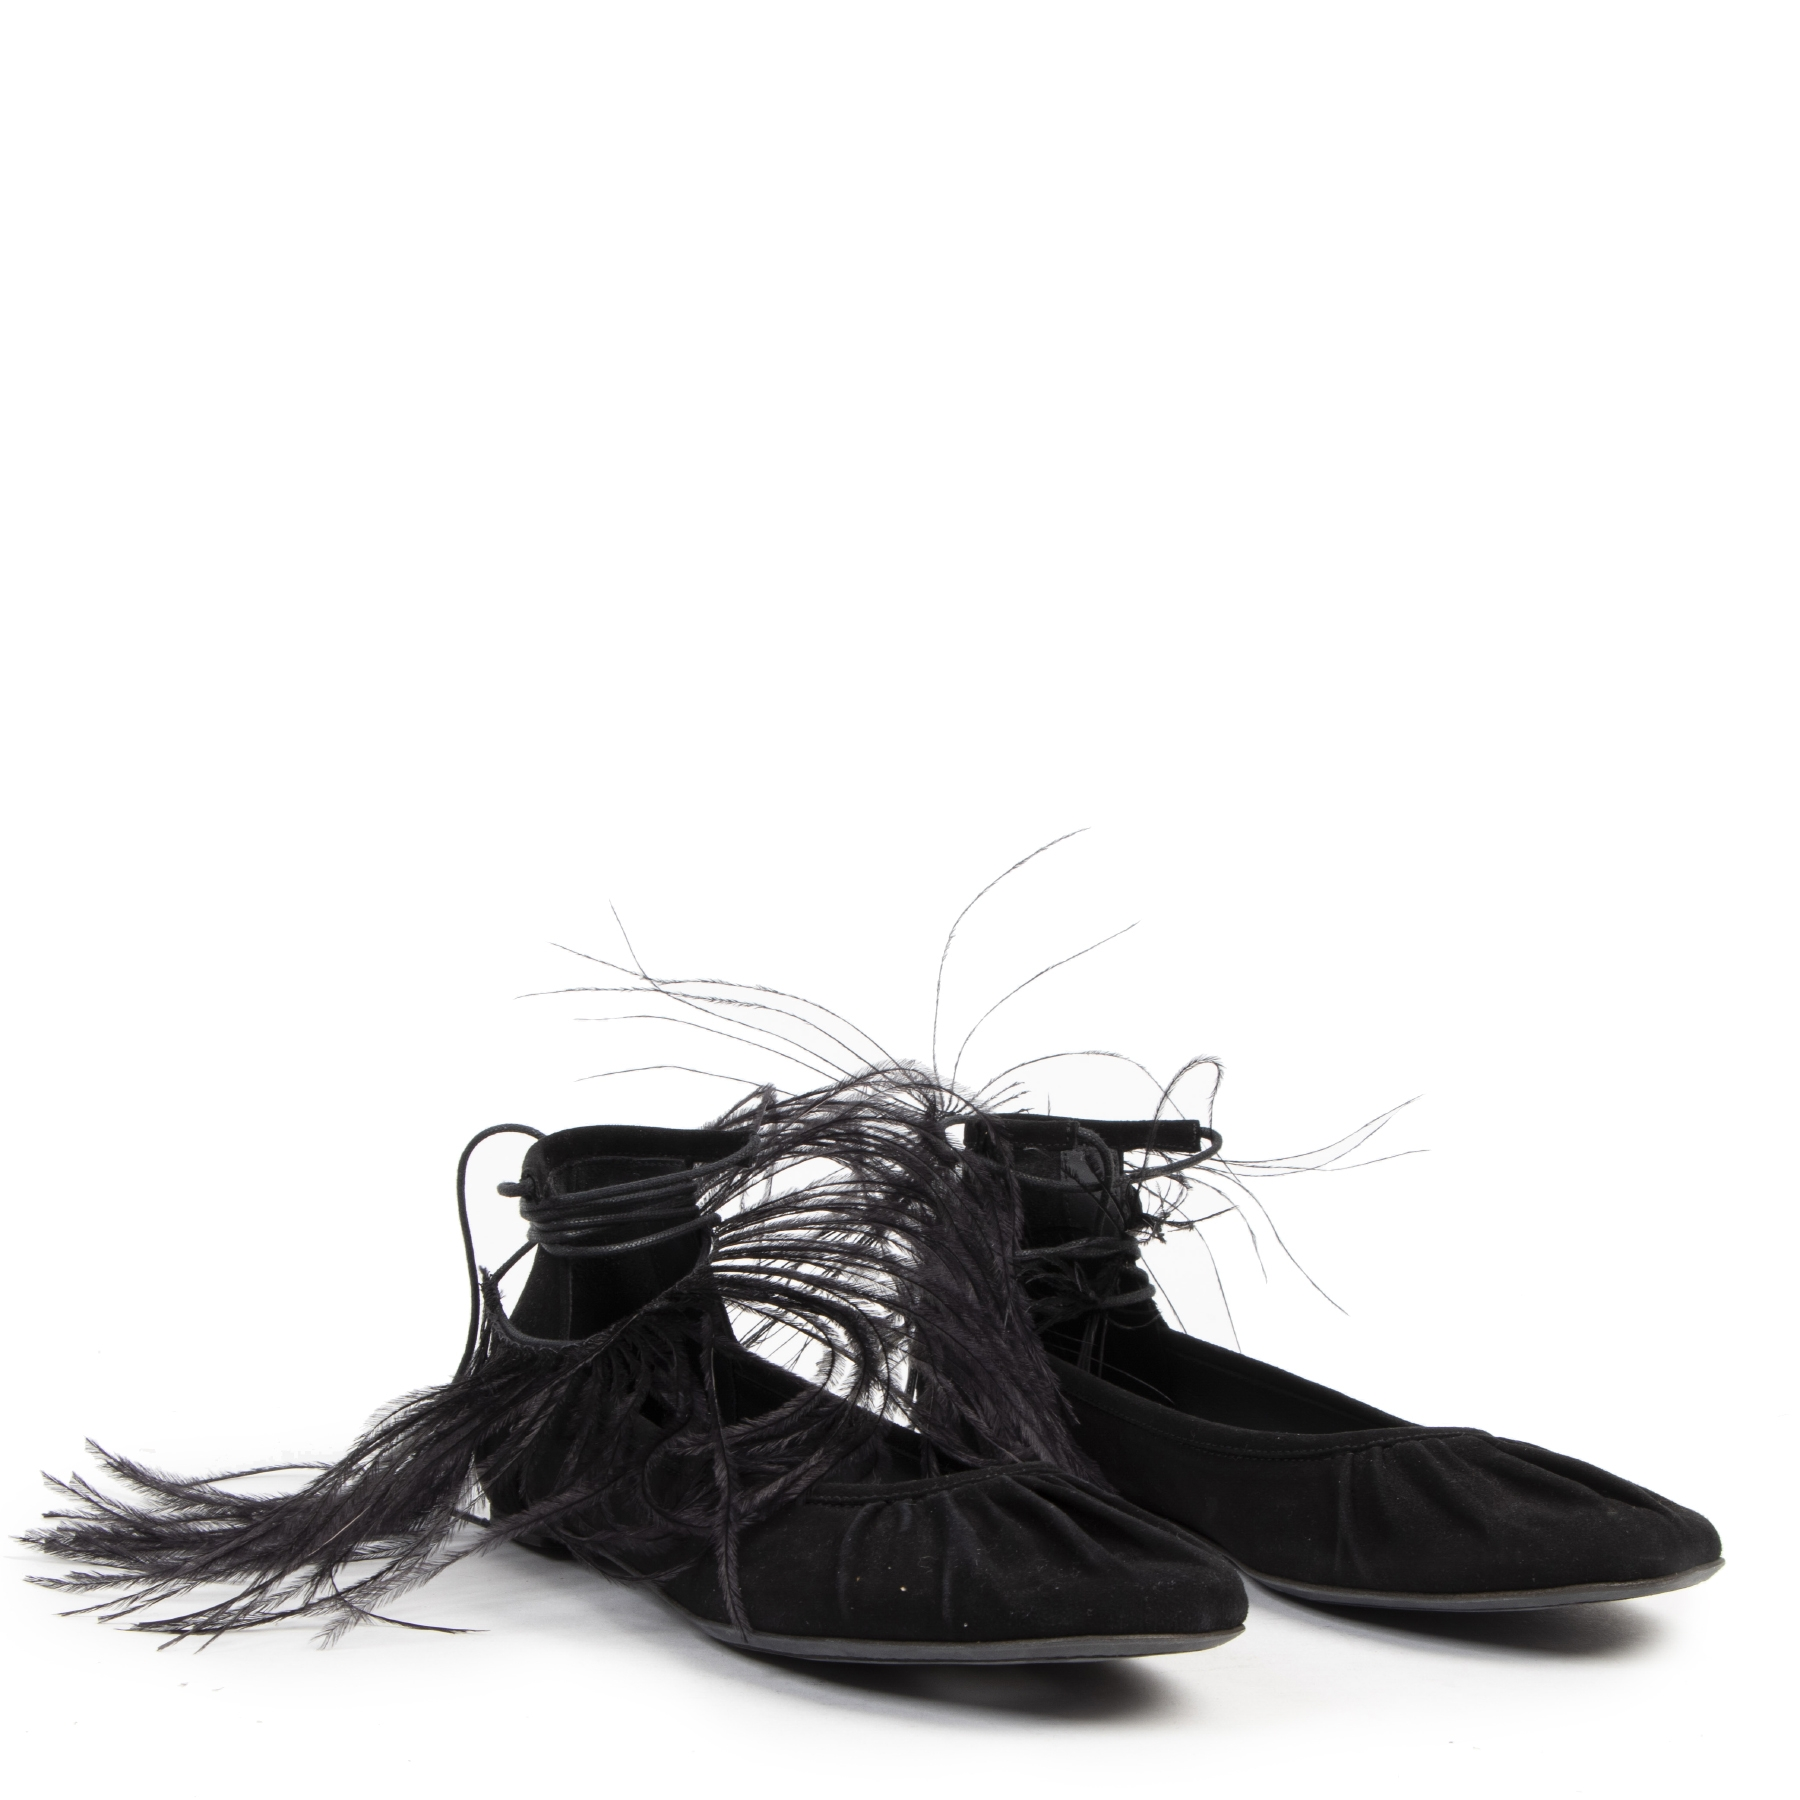 Authentic Secondhand Ann Demeulemeester Black Feather-trimmed Suede Flats - Size 38,5 designer shoes luxury vintage webshop fashion designer high end brands